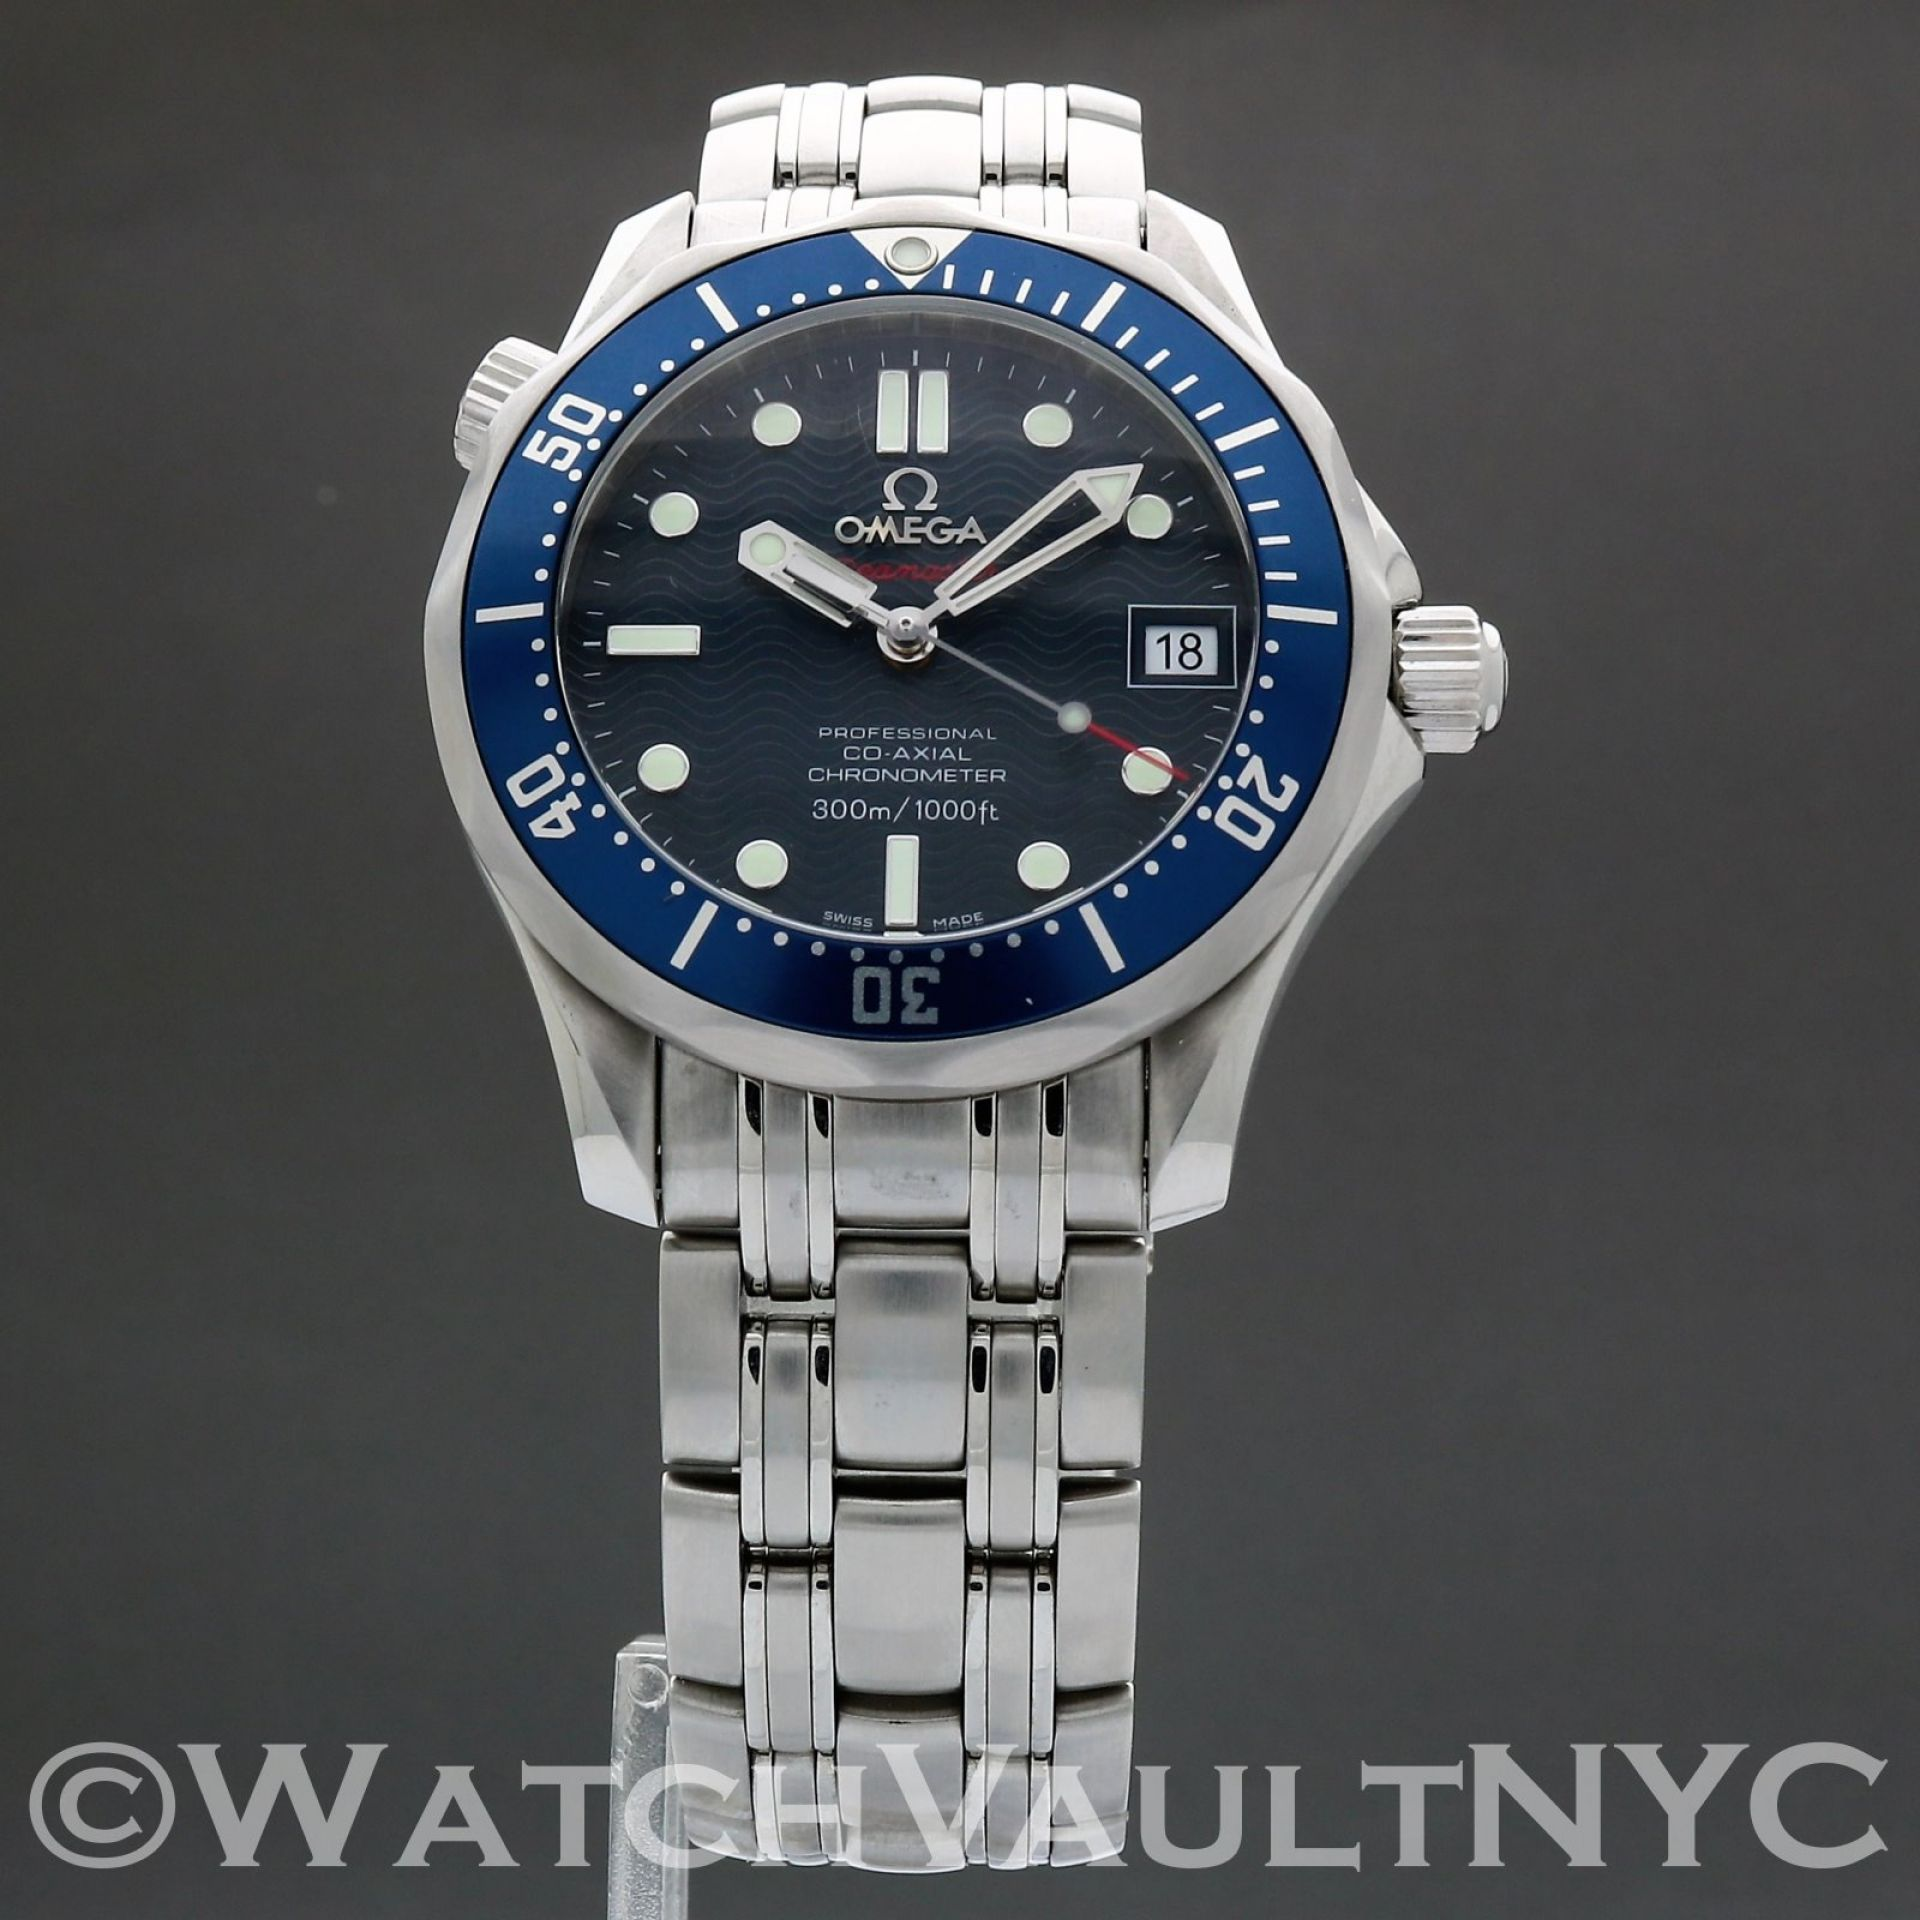 Omega Seamaster Professional 300M 2222.80 James Bond 36mm Auto SC503